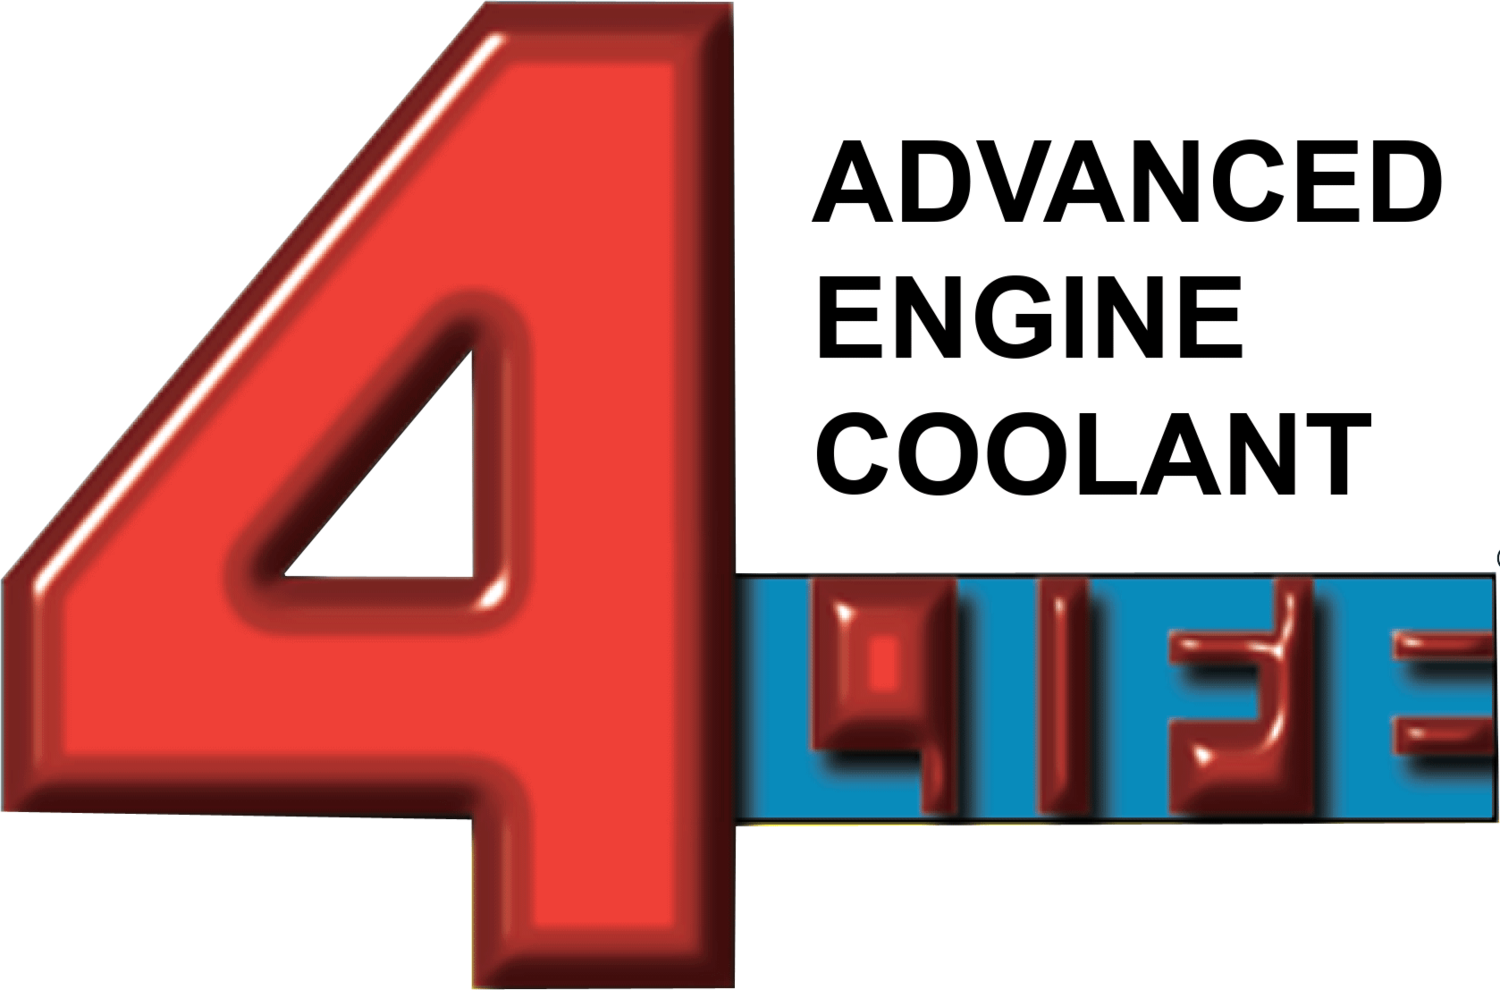 Technical | 4life is the for life coolant and antifreeze